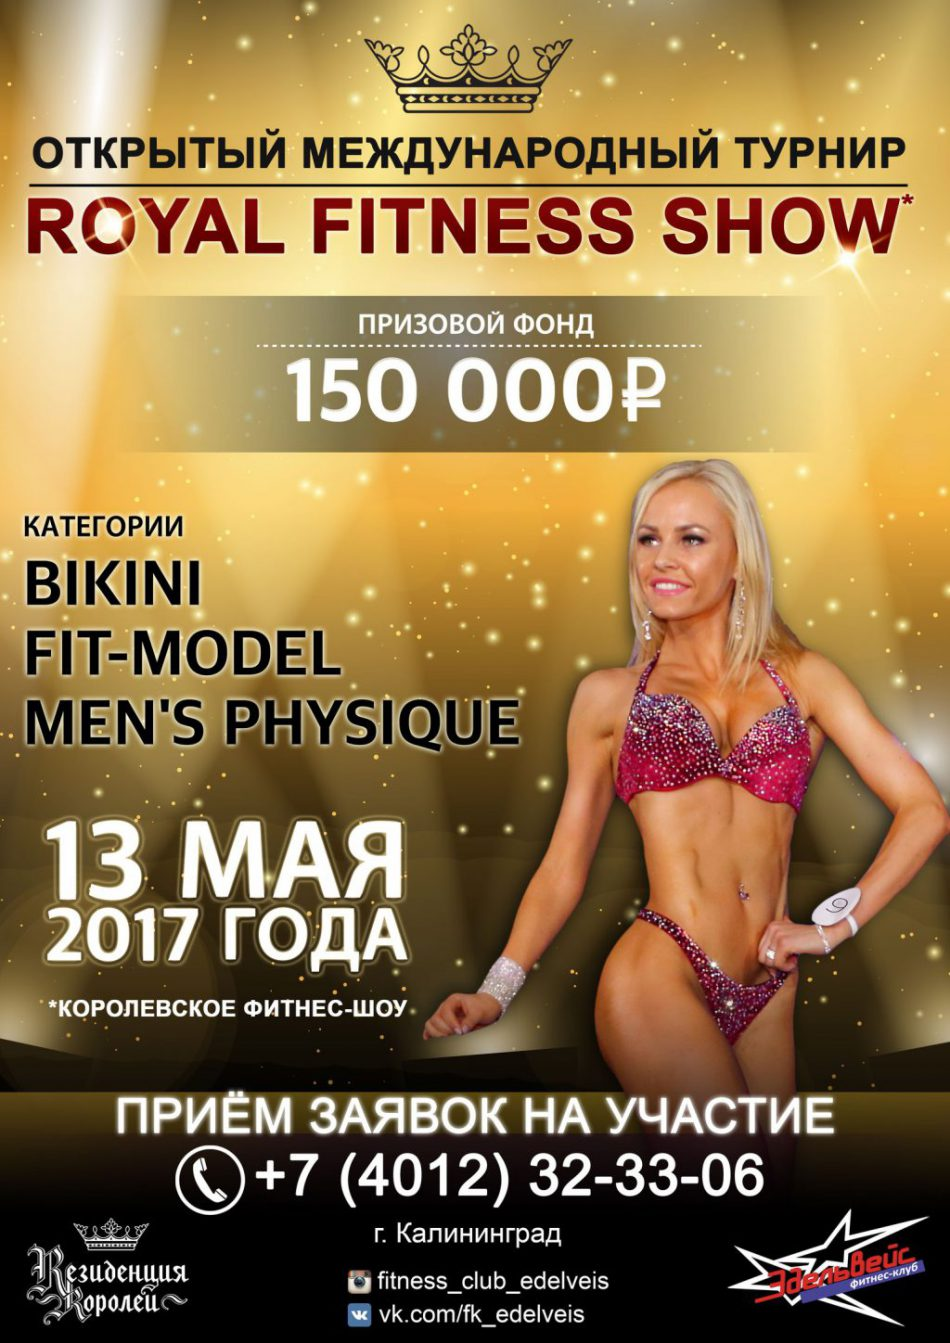 Royal Fitness Show 2017